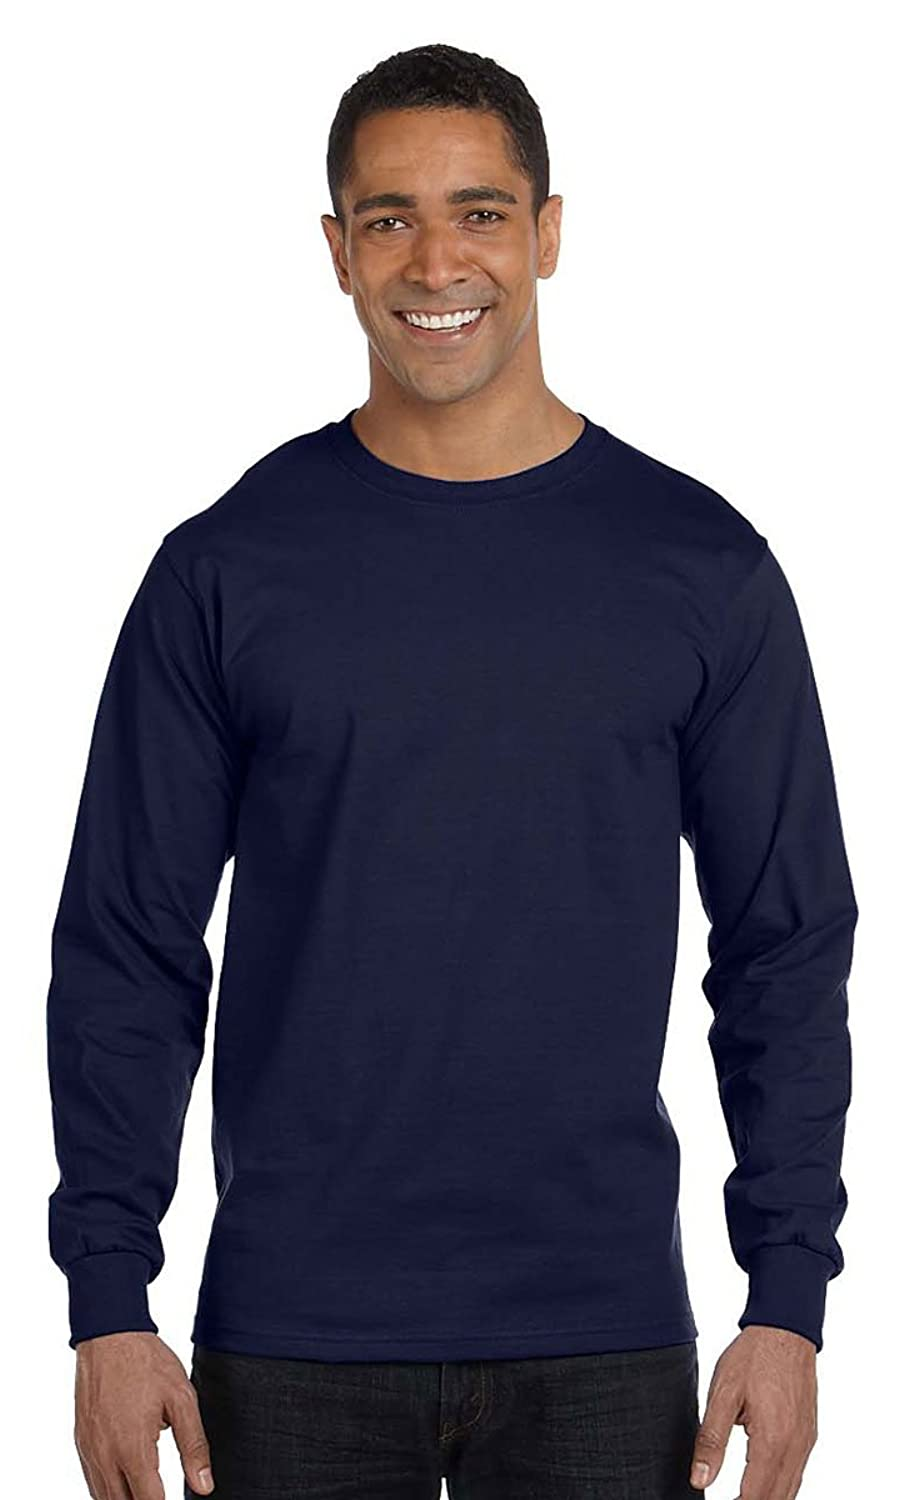 a094d2fd 85%OFF Hanes mens 6.1 oz. Long-Sleeve Beefy-T(5186)-NAVY-2XL - url ...